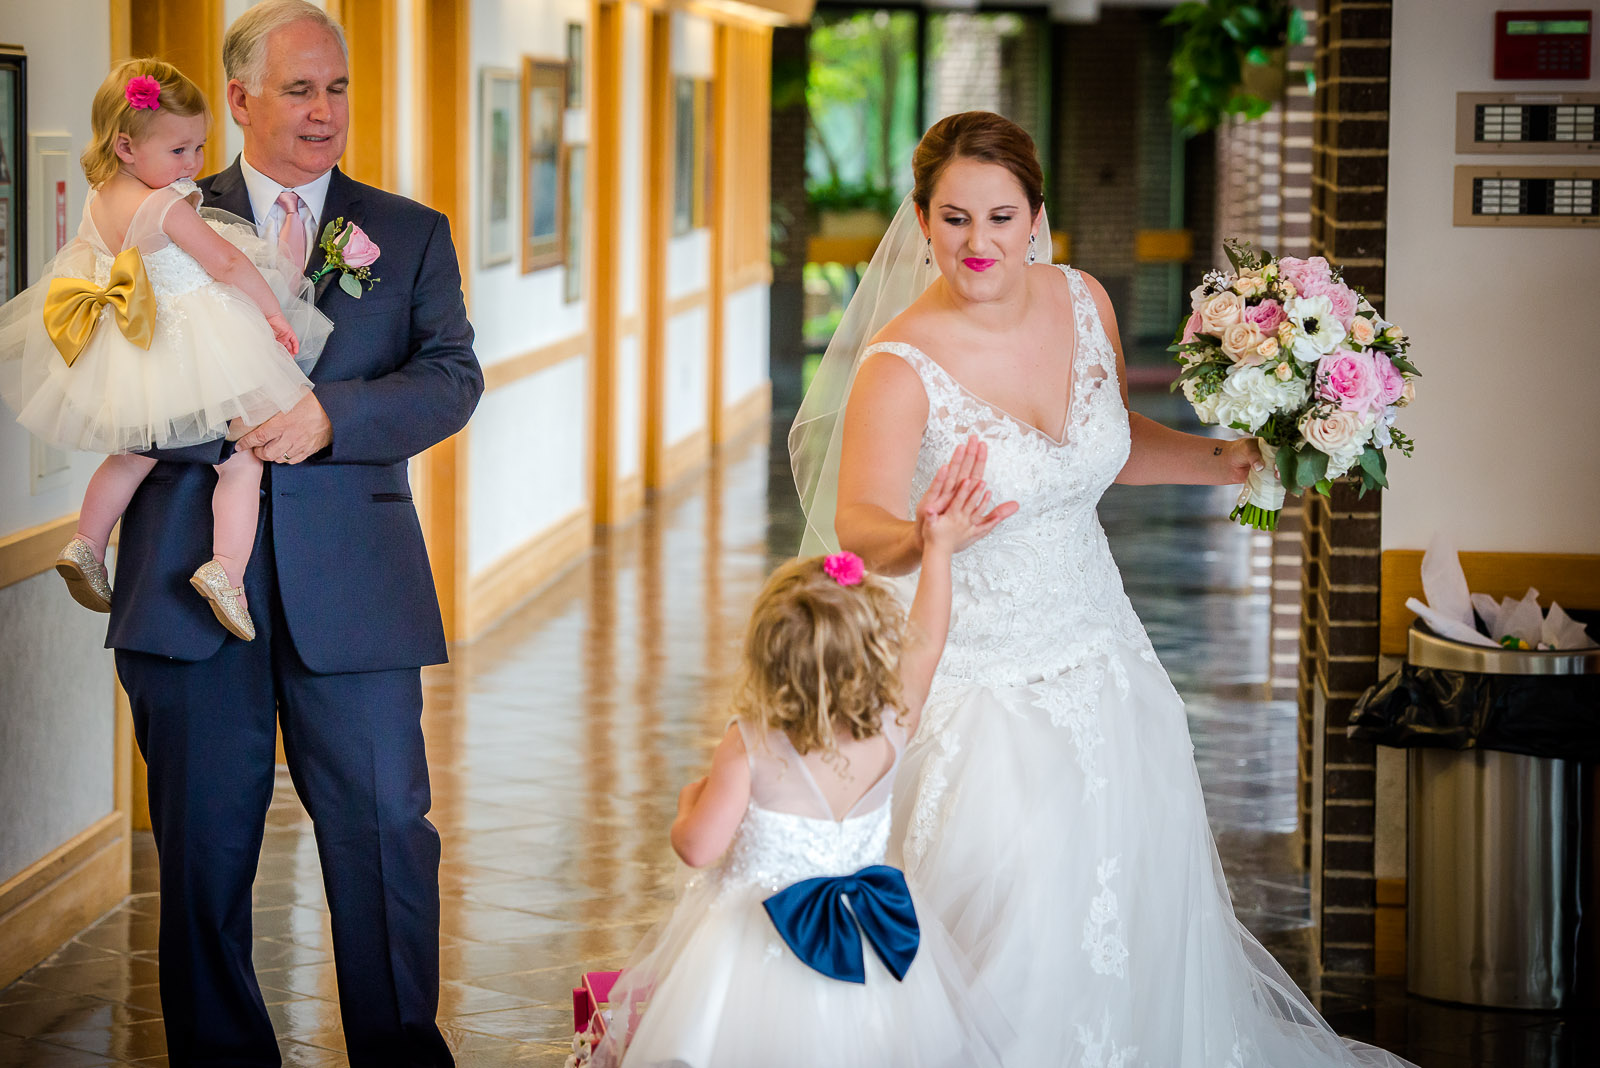 Eric_and_Christy_Photography_Blog_2018_Wed_moments-25